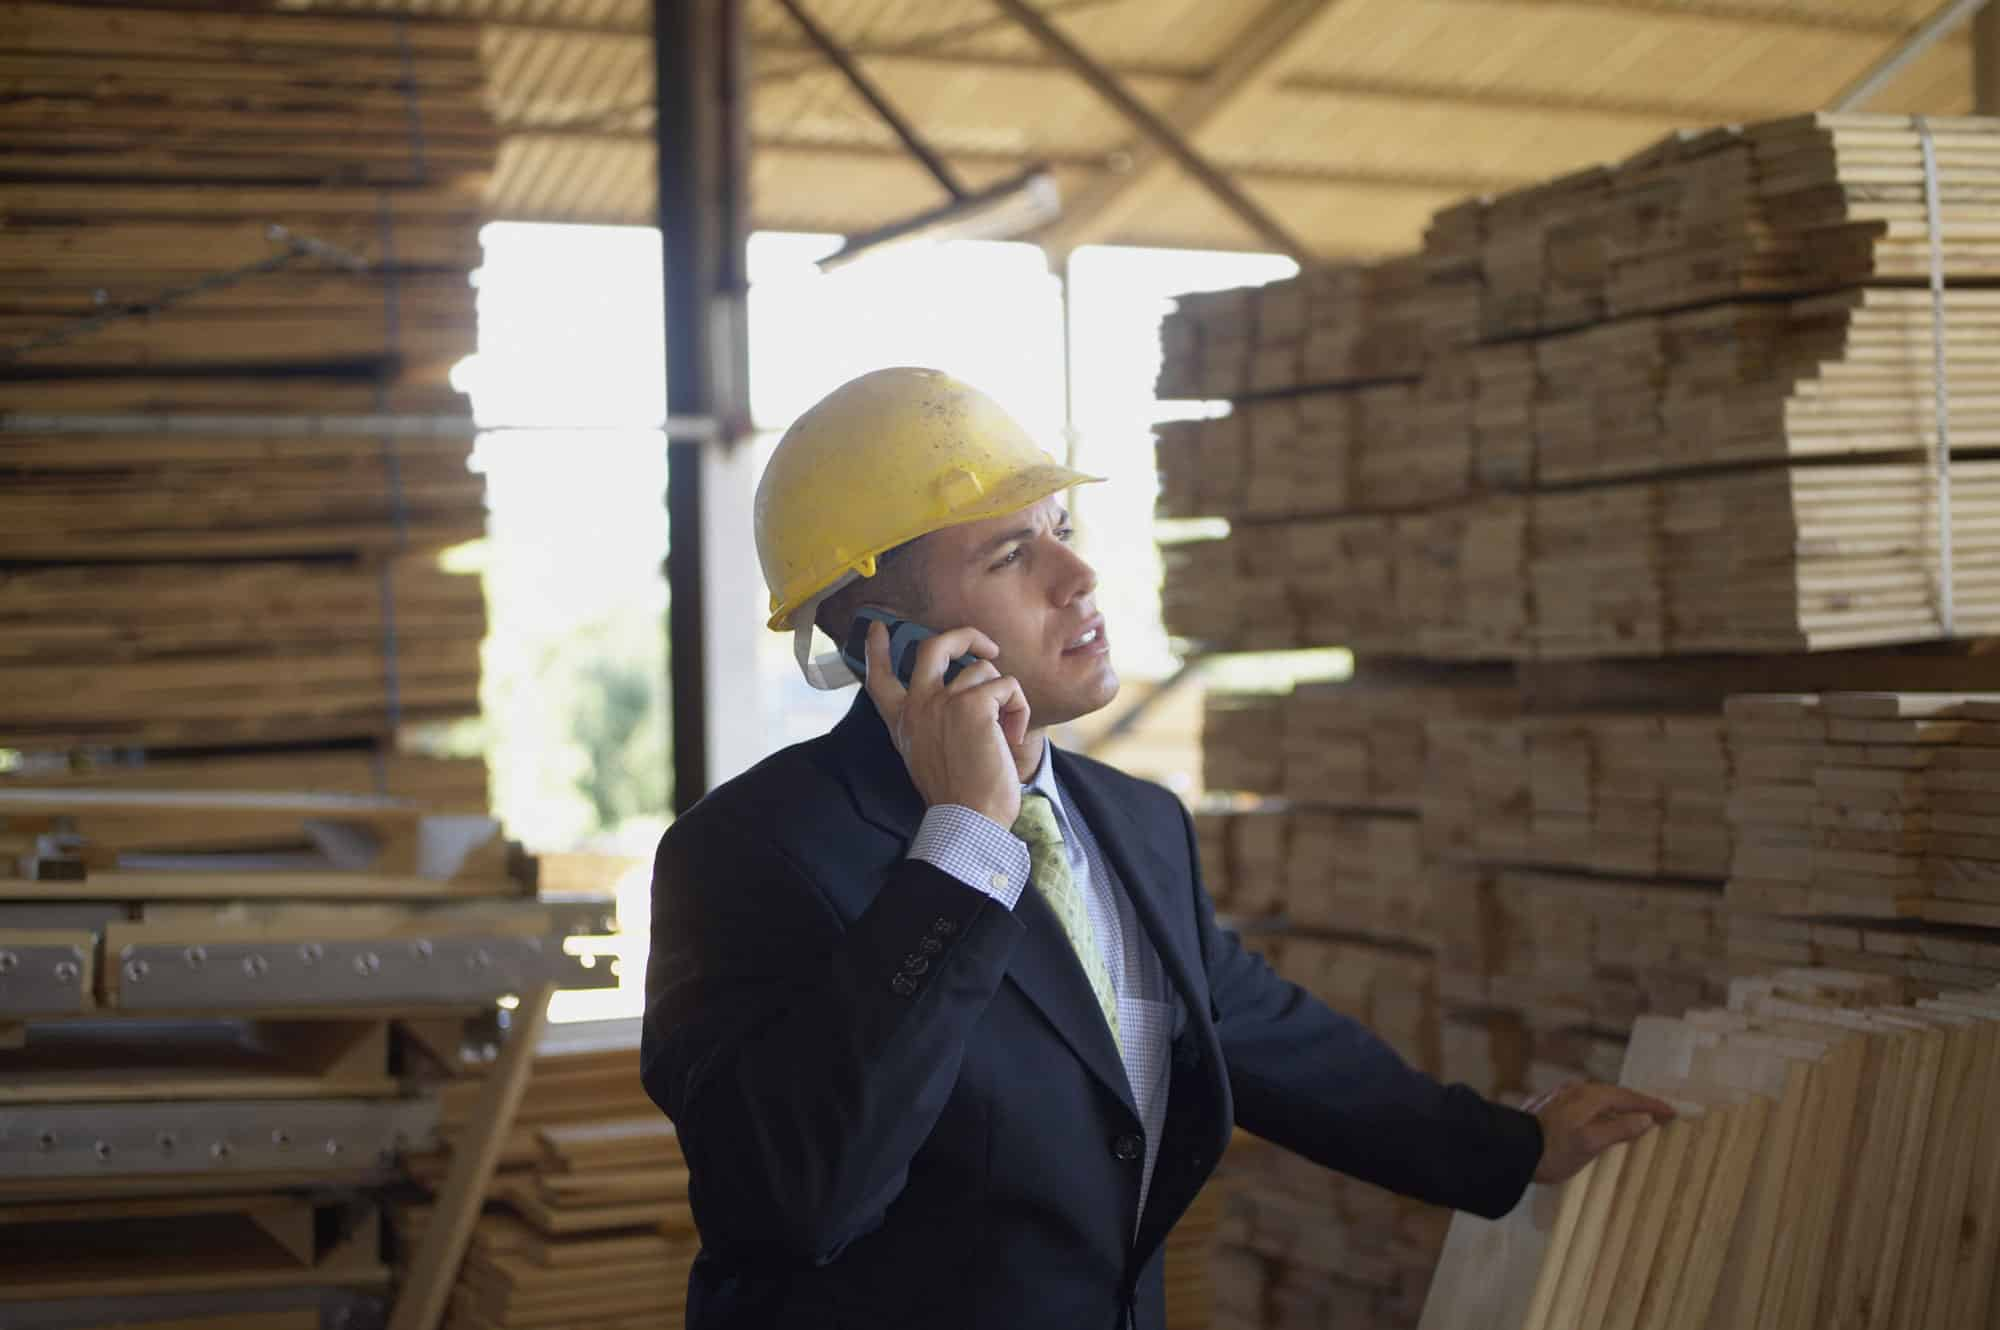 Man in a suit and hard hat talking on the phone in a lumber yard